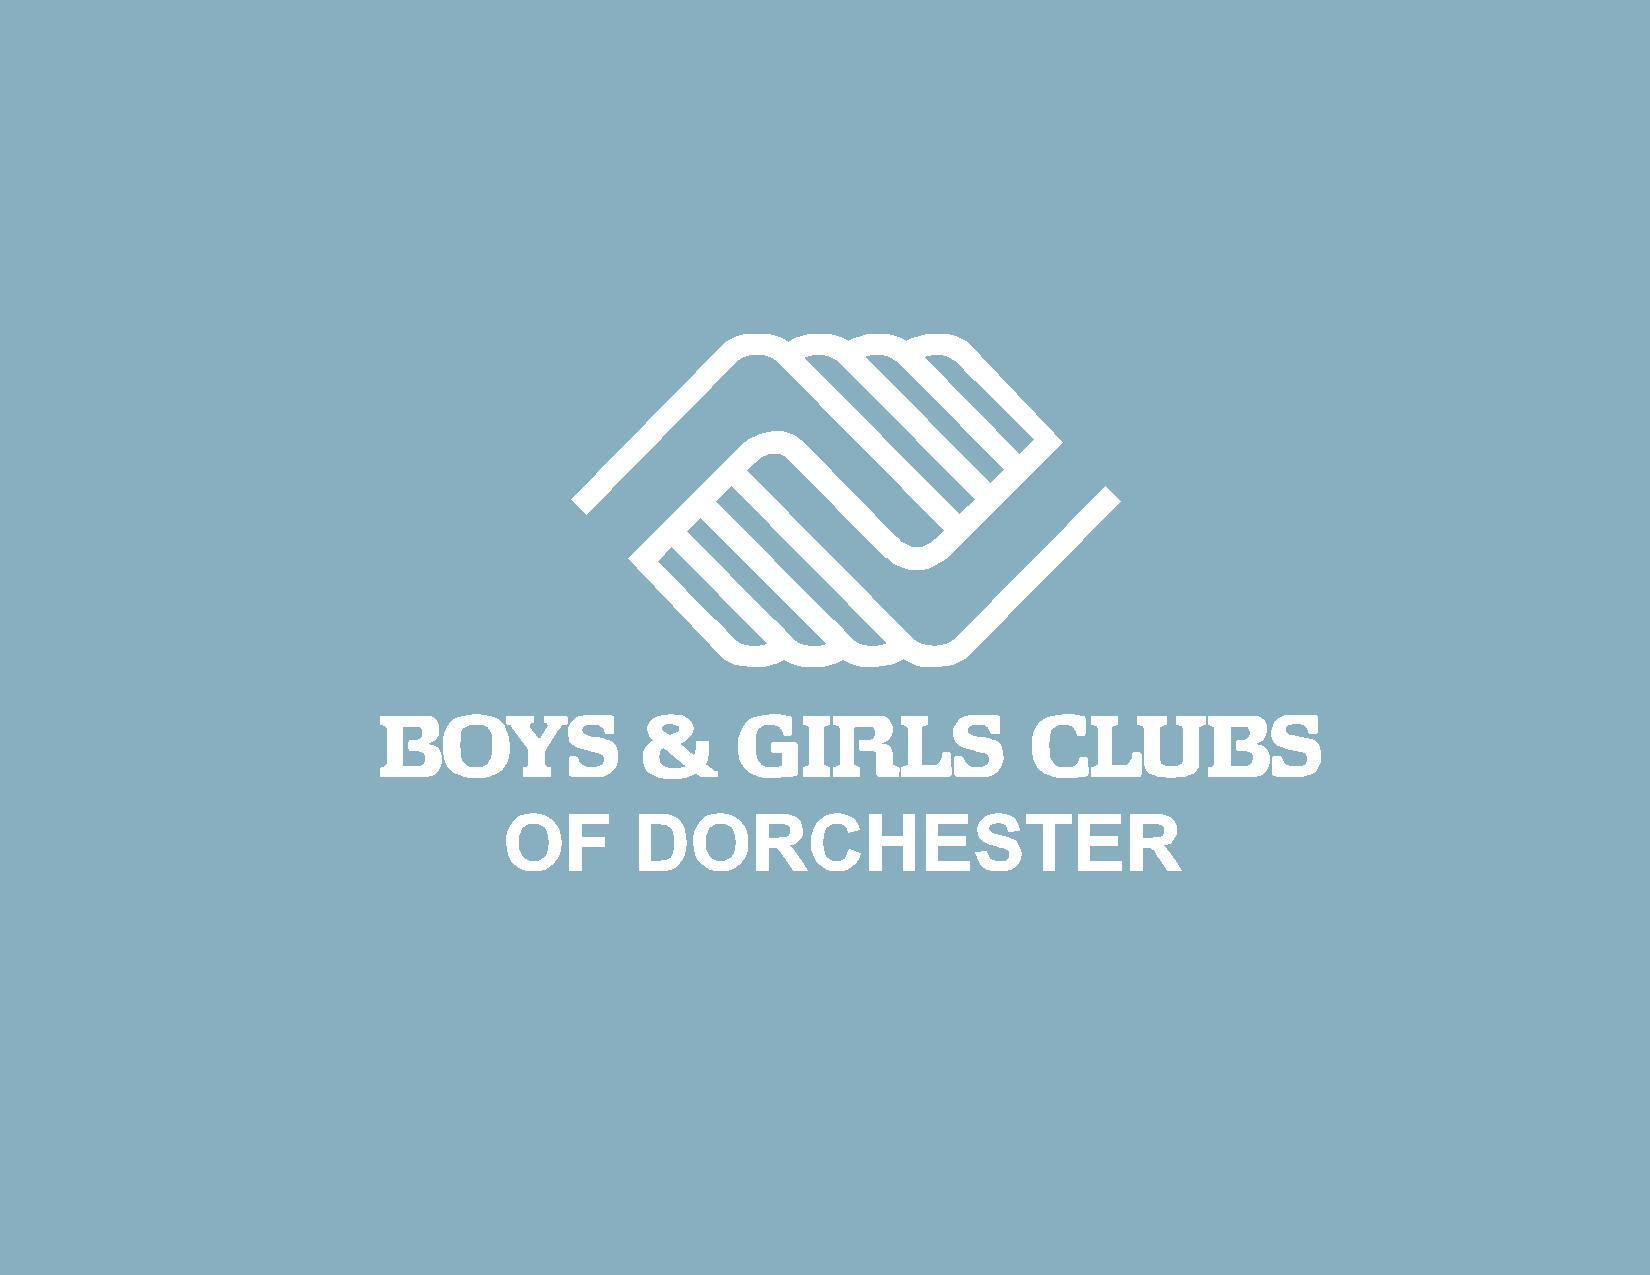 boys and girls club of dorchester logo #ivs4charity